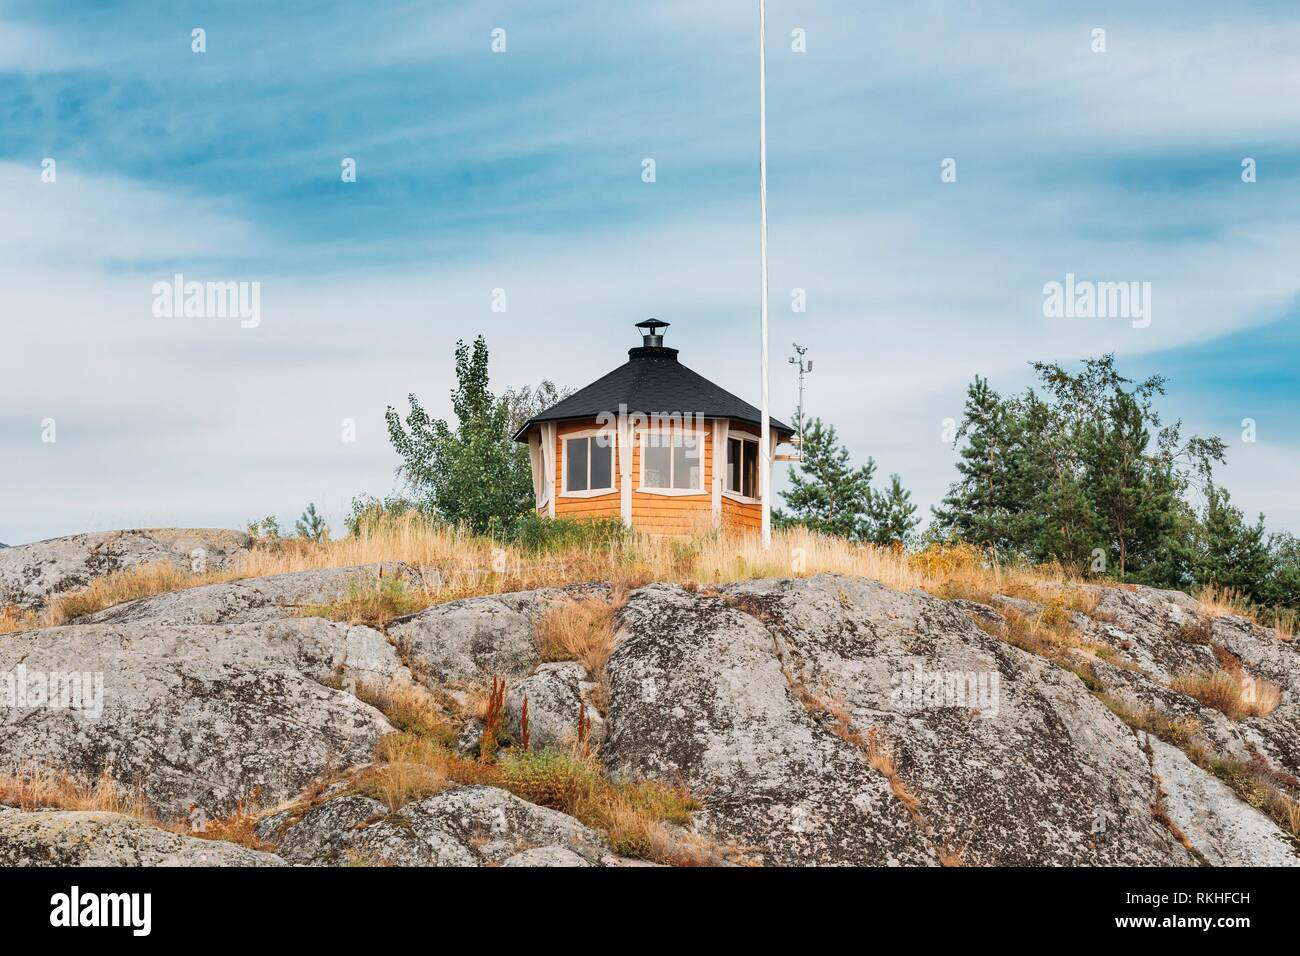 Small Finnish Weather Meteorological Station On Rock In Island in Finland. - Stock Image